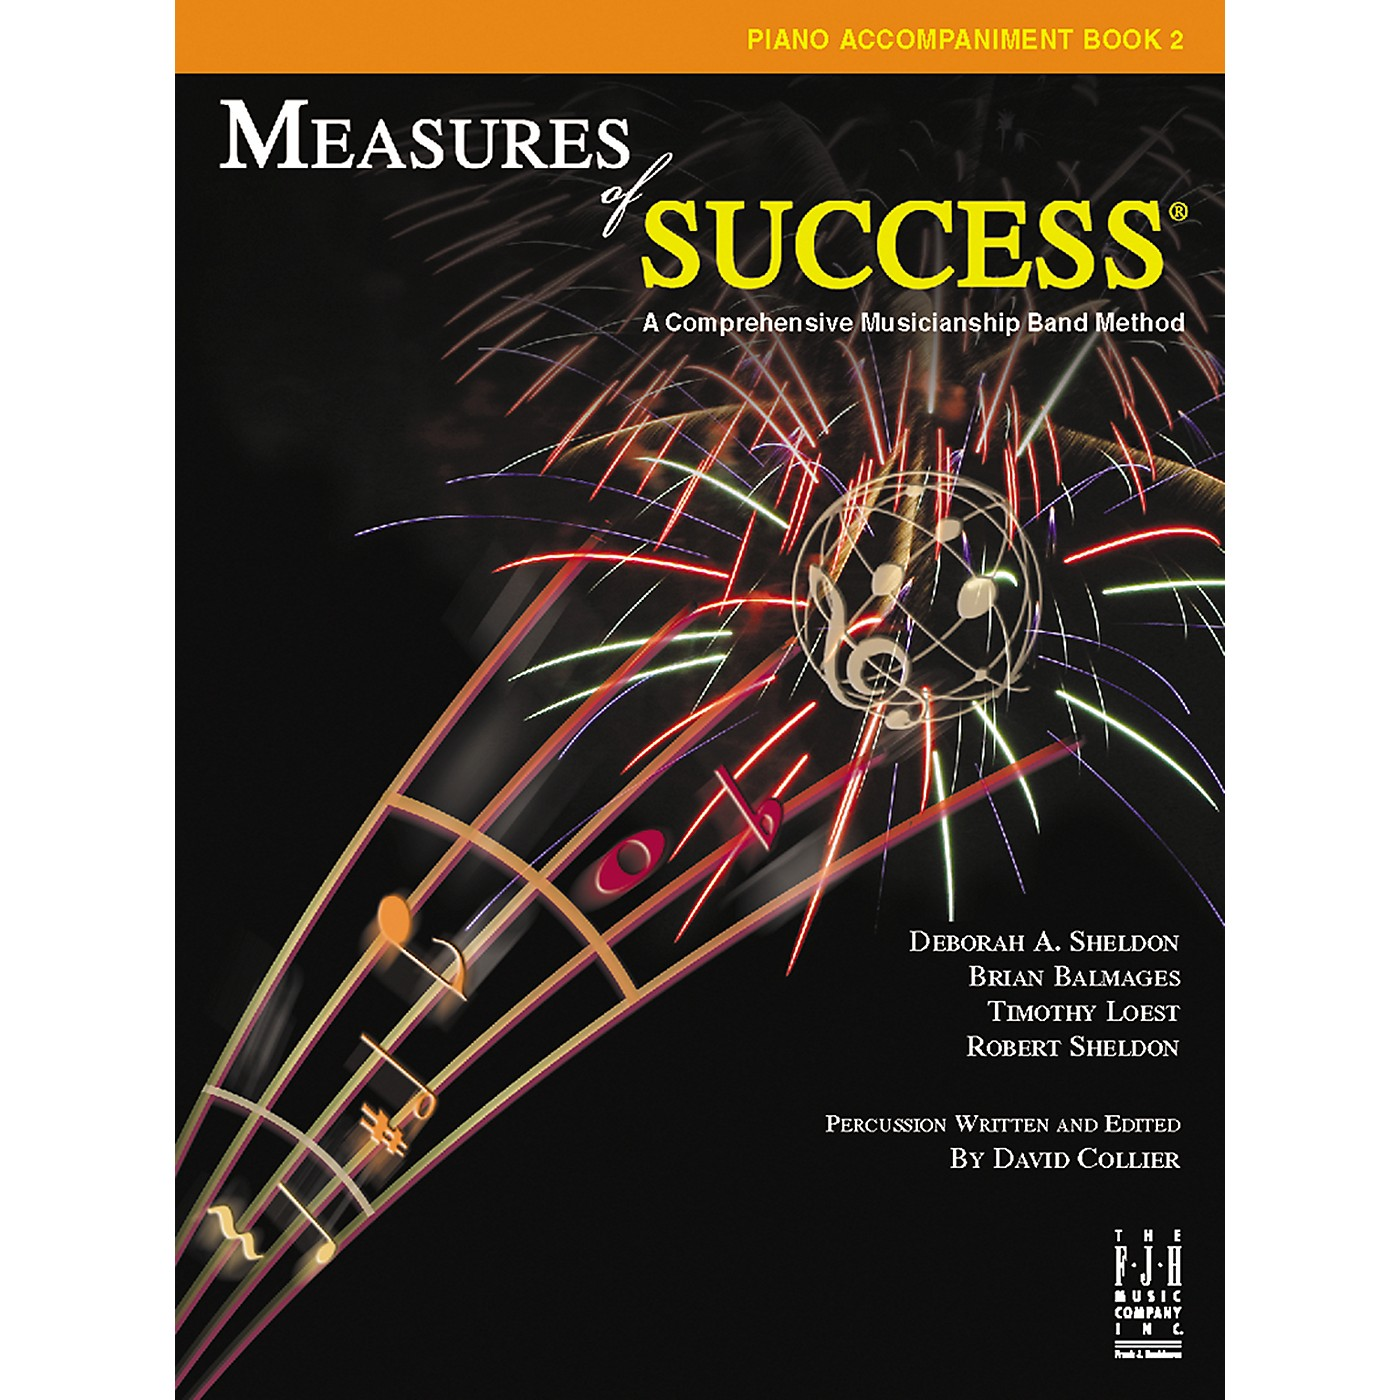 FJH Music Measures of Success Piano Accompaniment Book 2 thumbnail